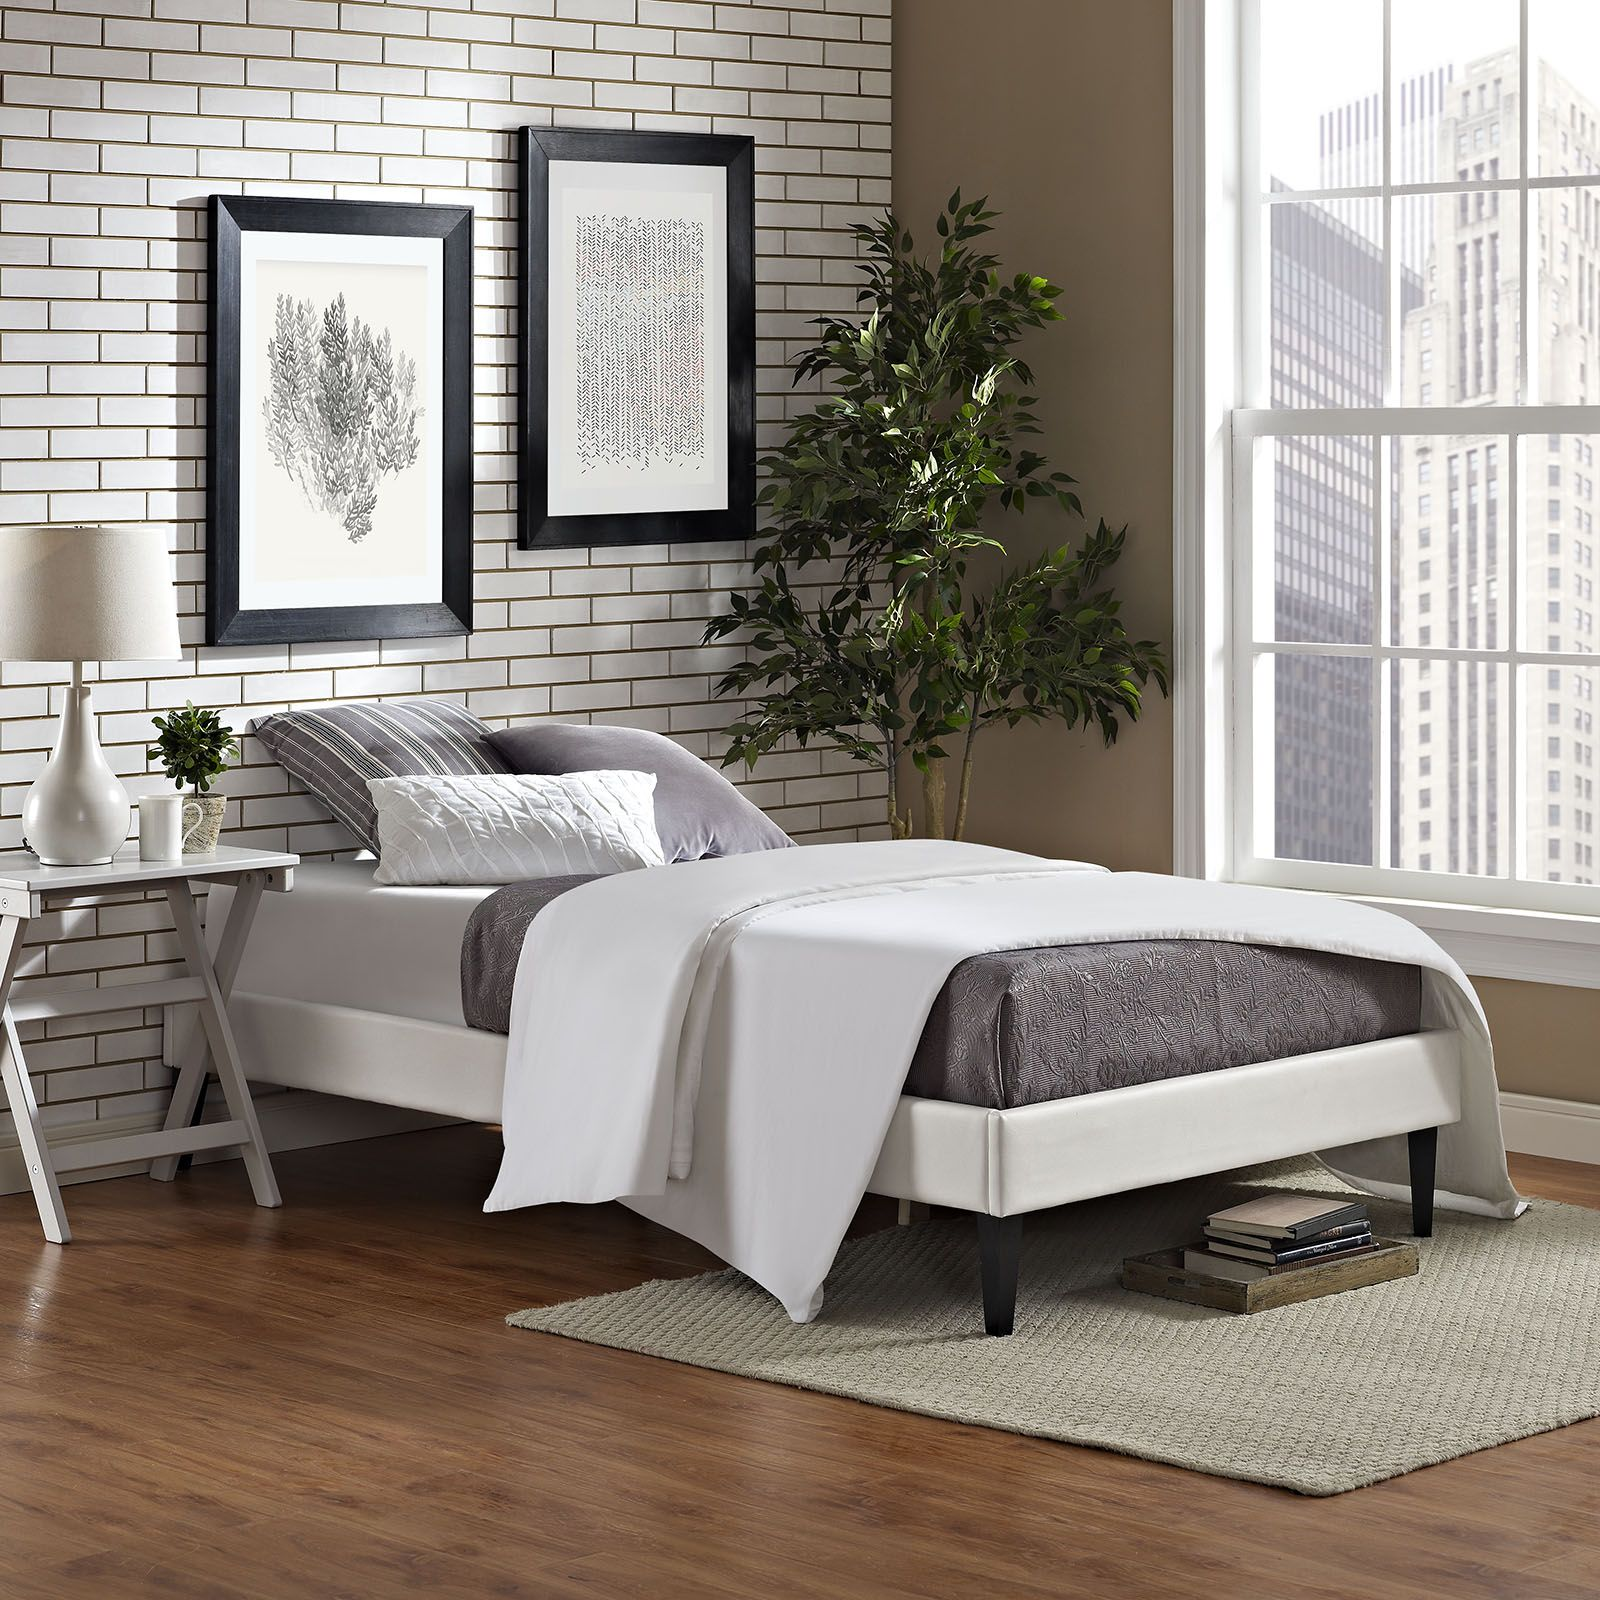 Modway Furniture 5347 Twin White Vinyl Platform Bed Frame